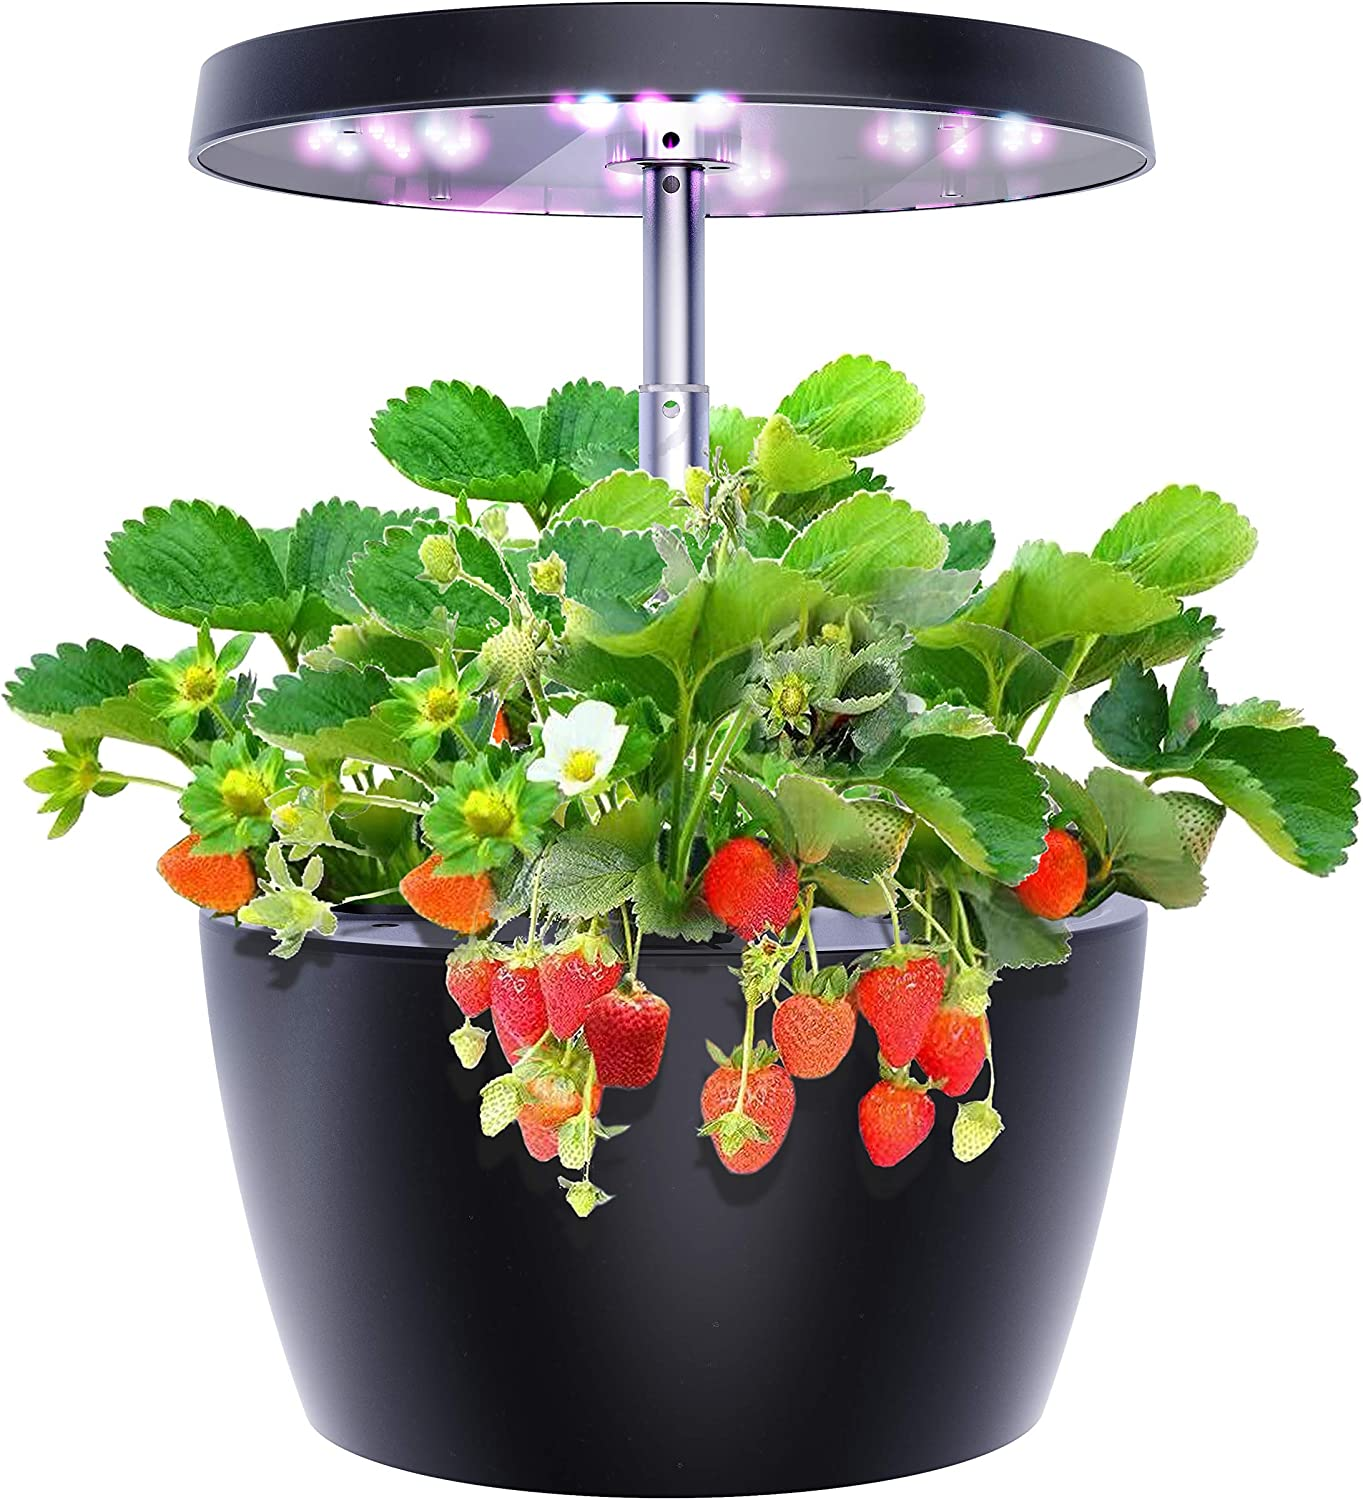 Hydroponics Growing System, Smart Garden with 3 Growth Modes, Indoor Herb Garden Starter Kit Easy to Use, Ideal Gift for Family, Black, 4 Pots